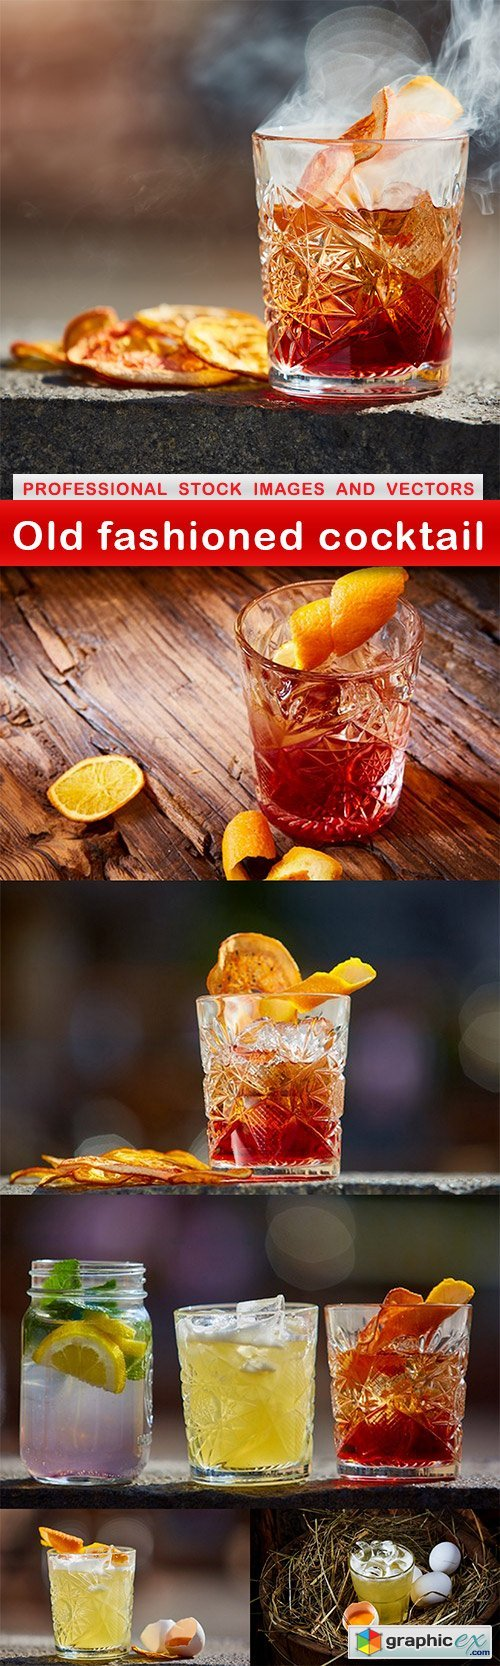 Old fashioned cocktail - 6 UHQ JPEG